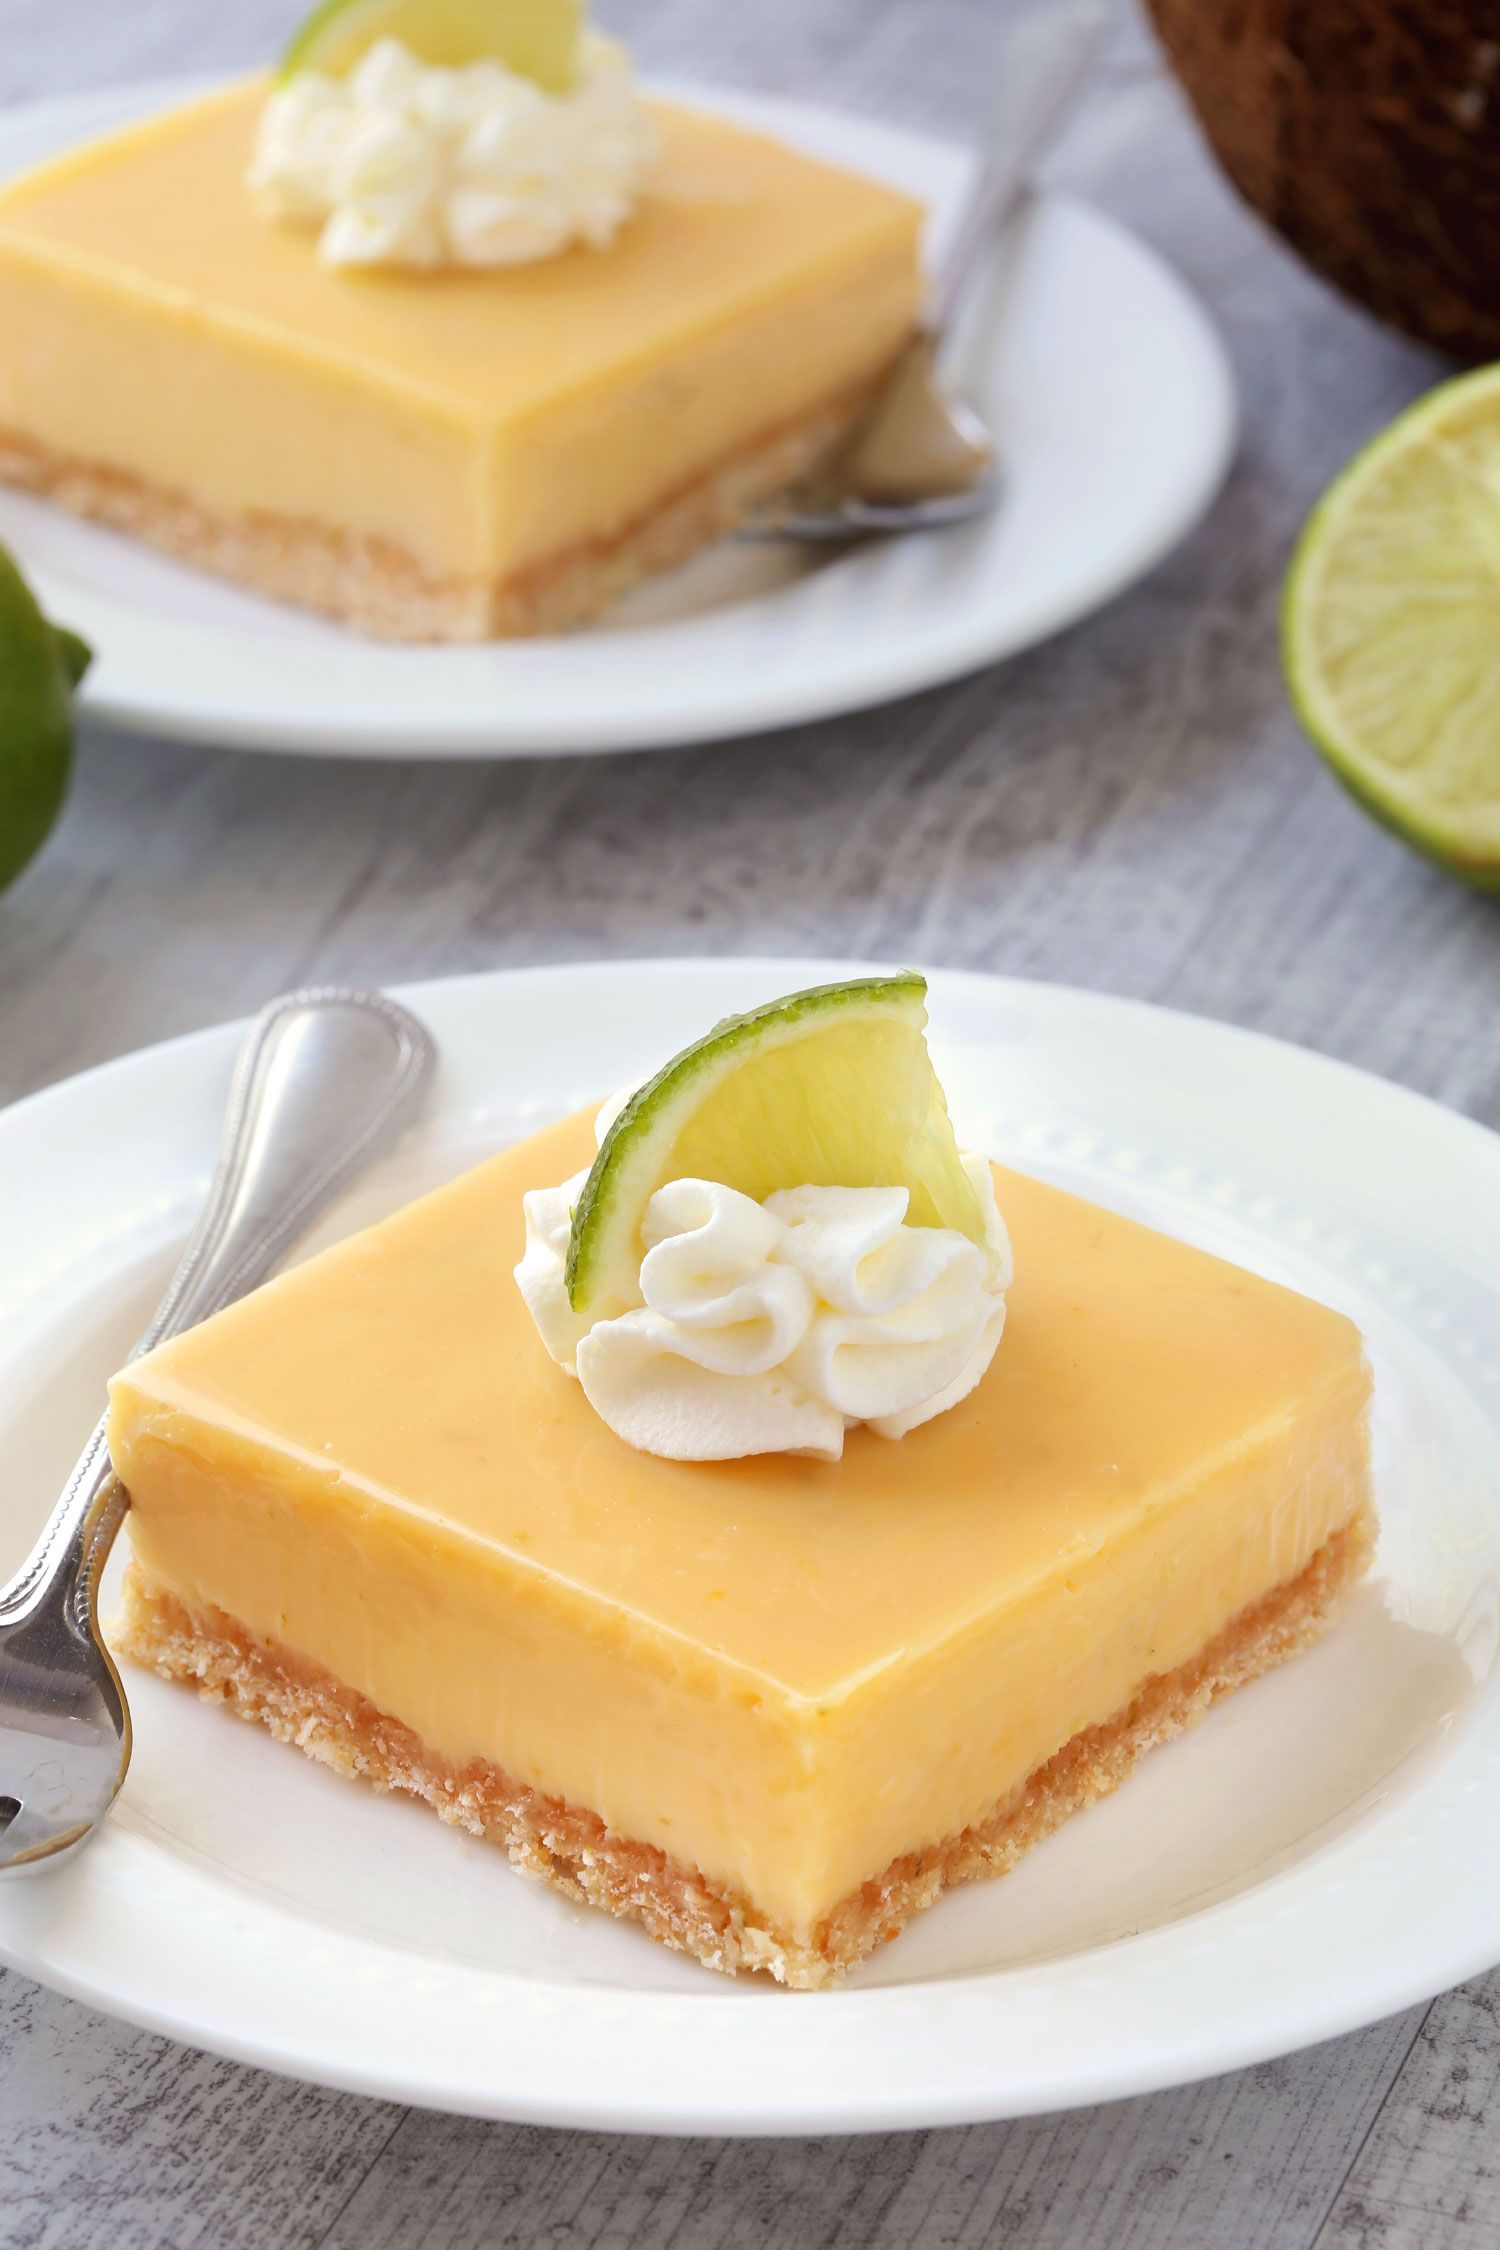 Key Lime Pie Bars Have A Creamy Texture You Ll Fall In Love With